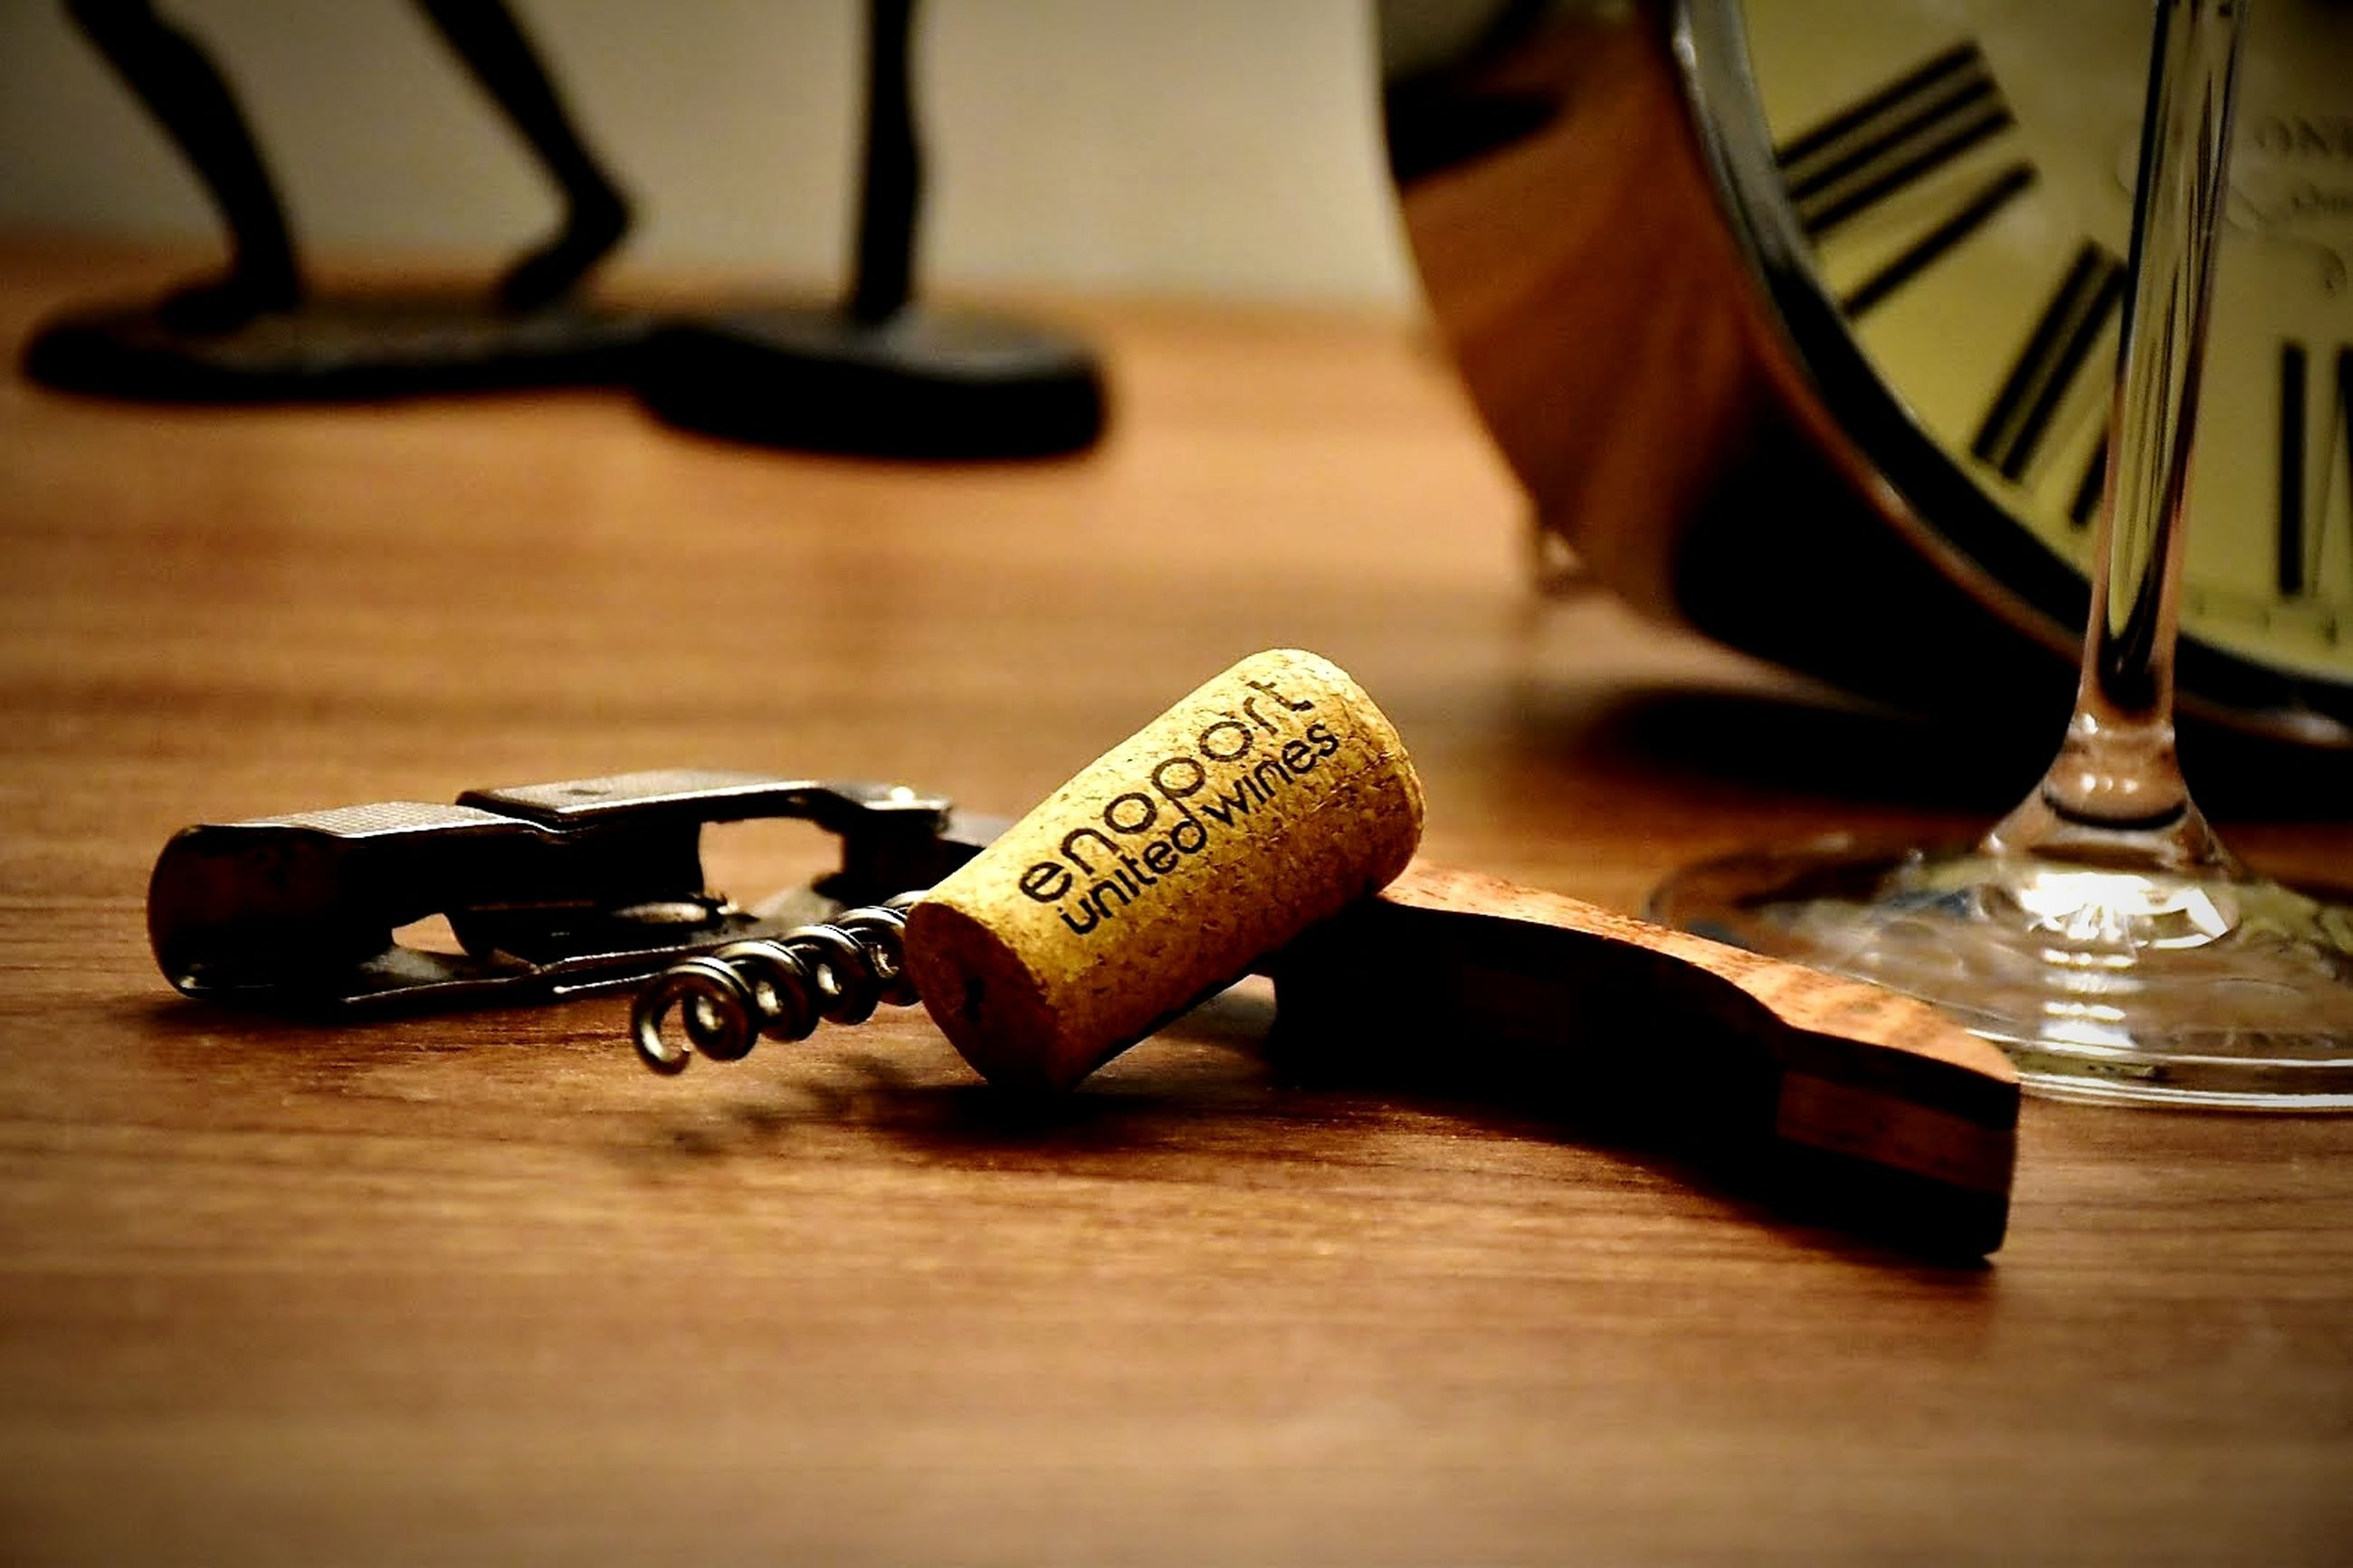 table, indoors, still life, wood - material, no people, close-up, refreshment, selective focus, drink, text, alcohol, food and drink, corkscrew, wine cork, flooring, bottle, time, antique, book